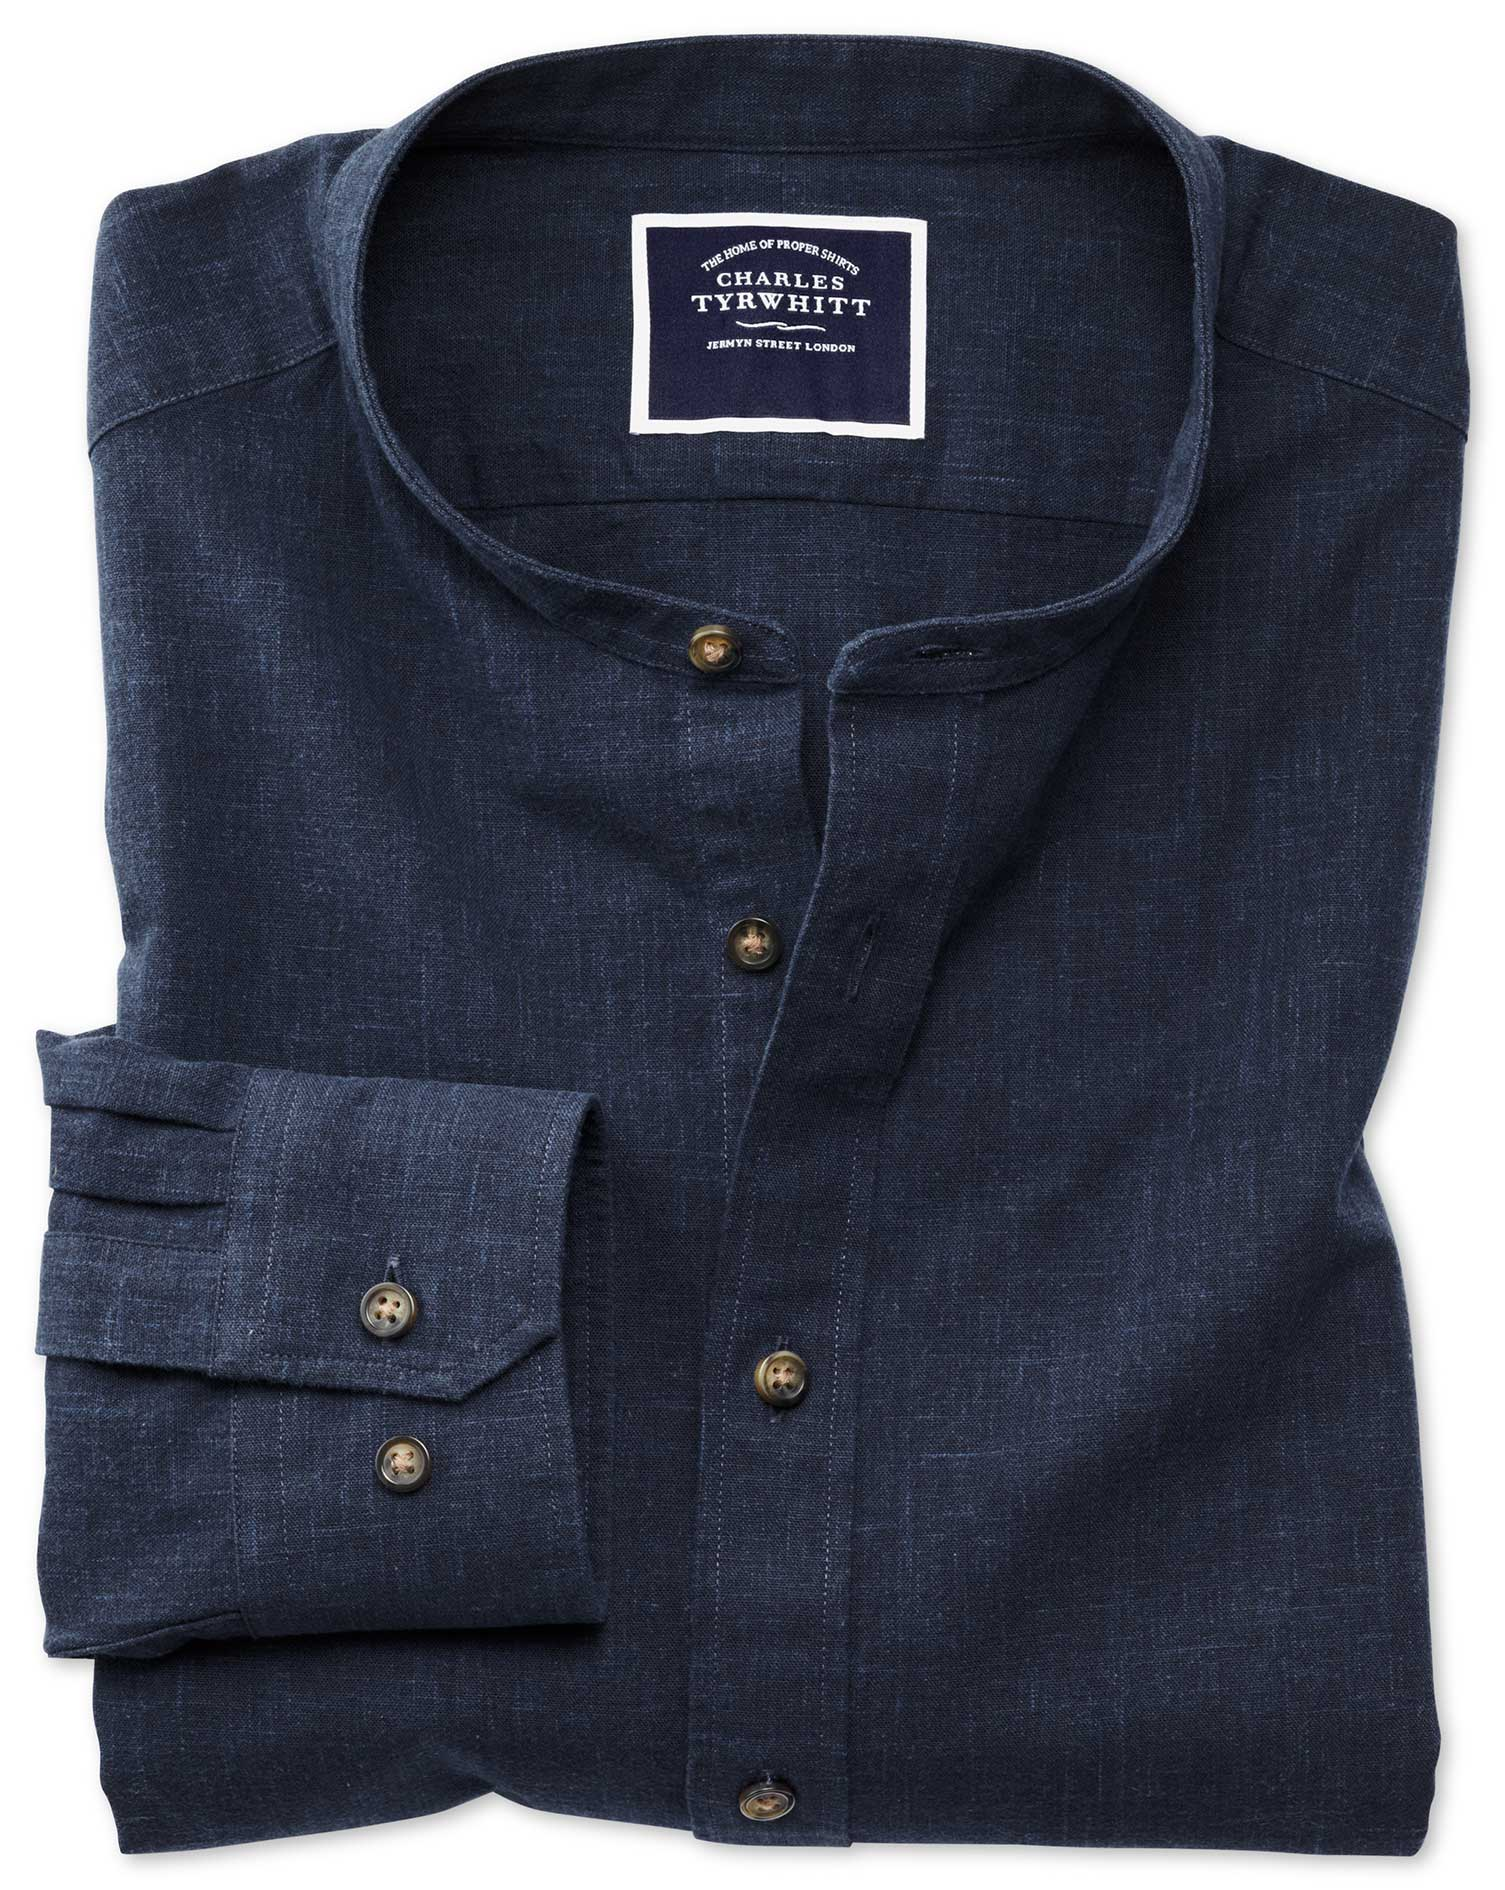 Slim Fit Collarless Navy Blue Cotton Shirt Single Cuff Size Large by Charles Tyrwhitt